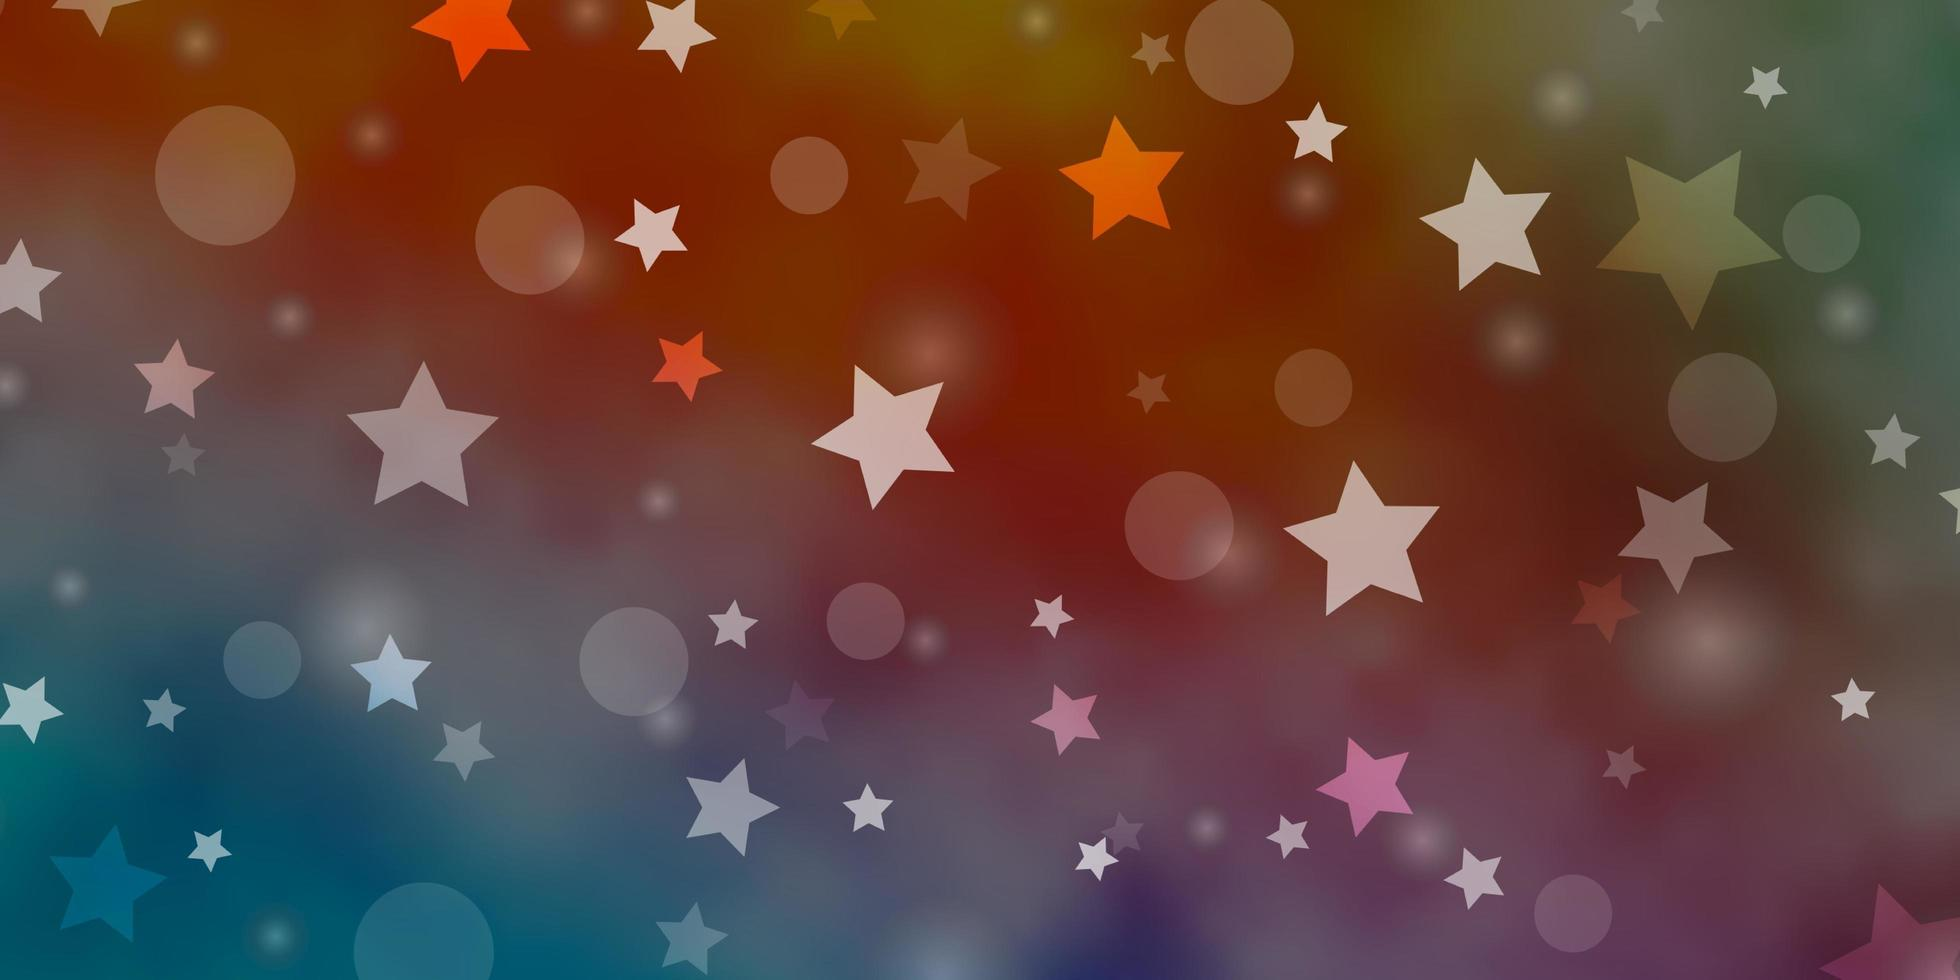 Blue, Red background with circles, stars. vector